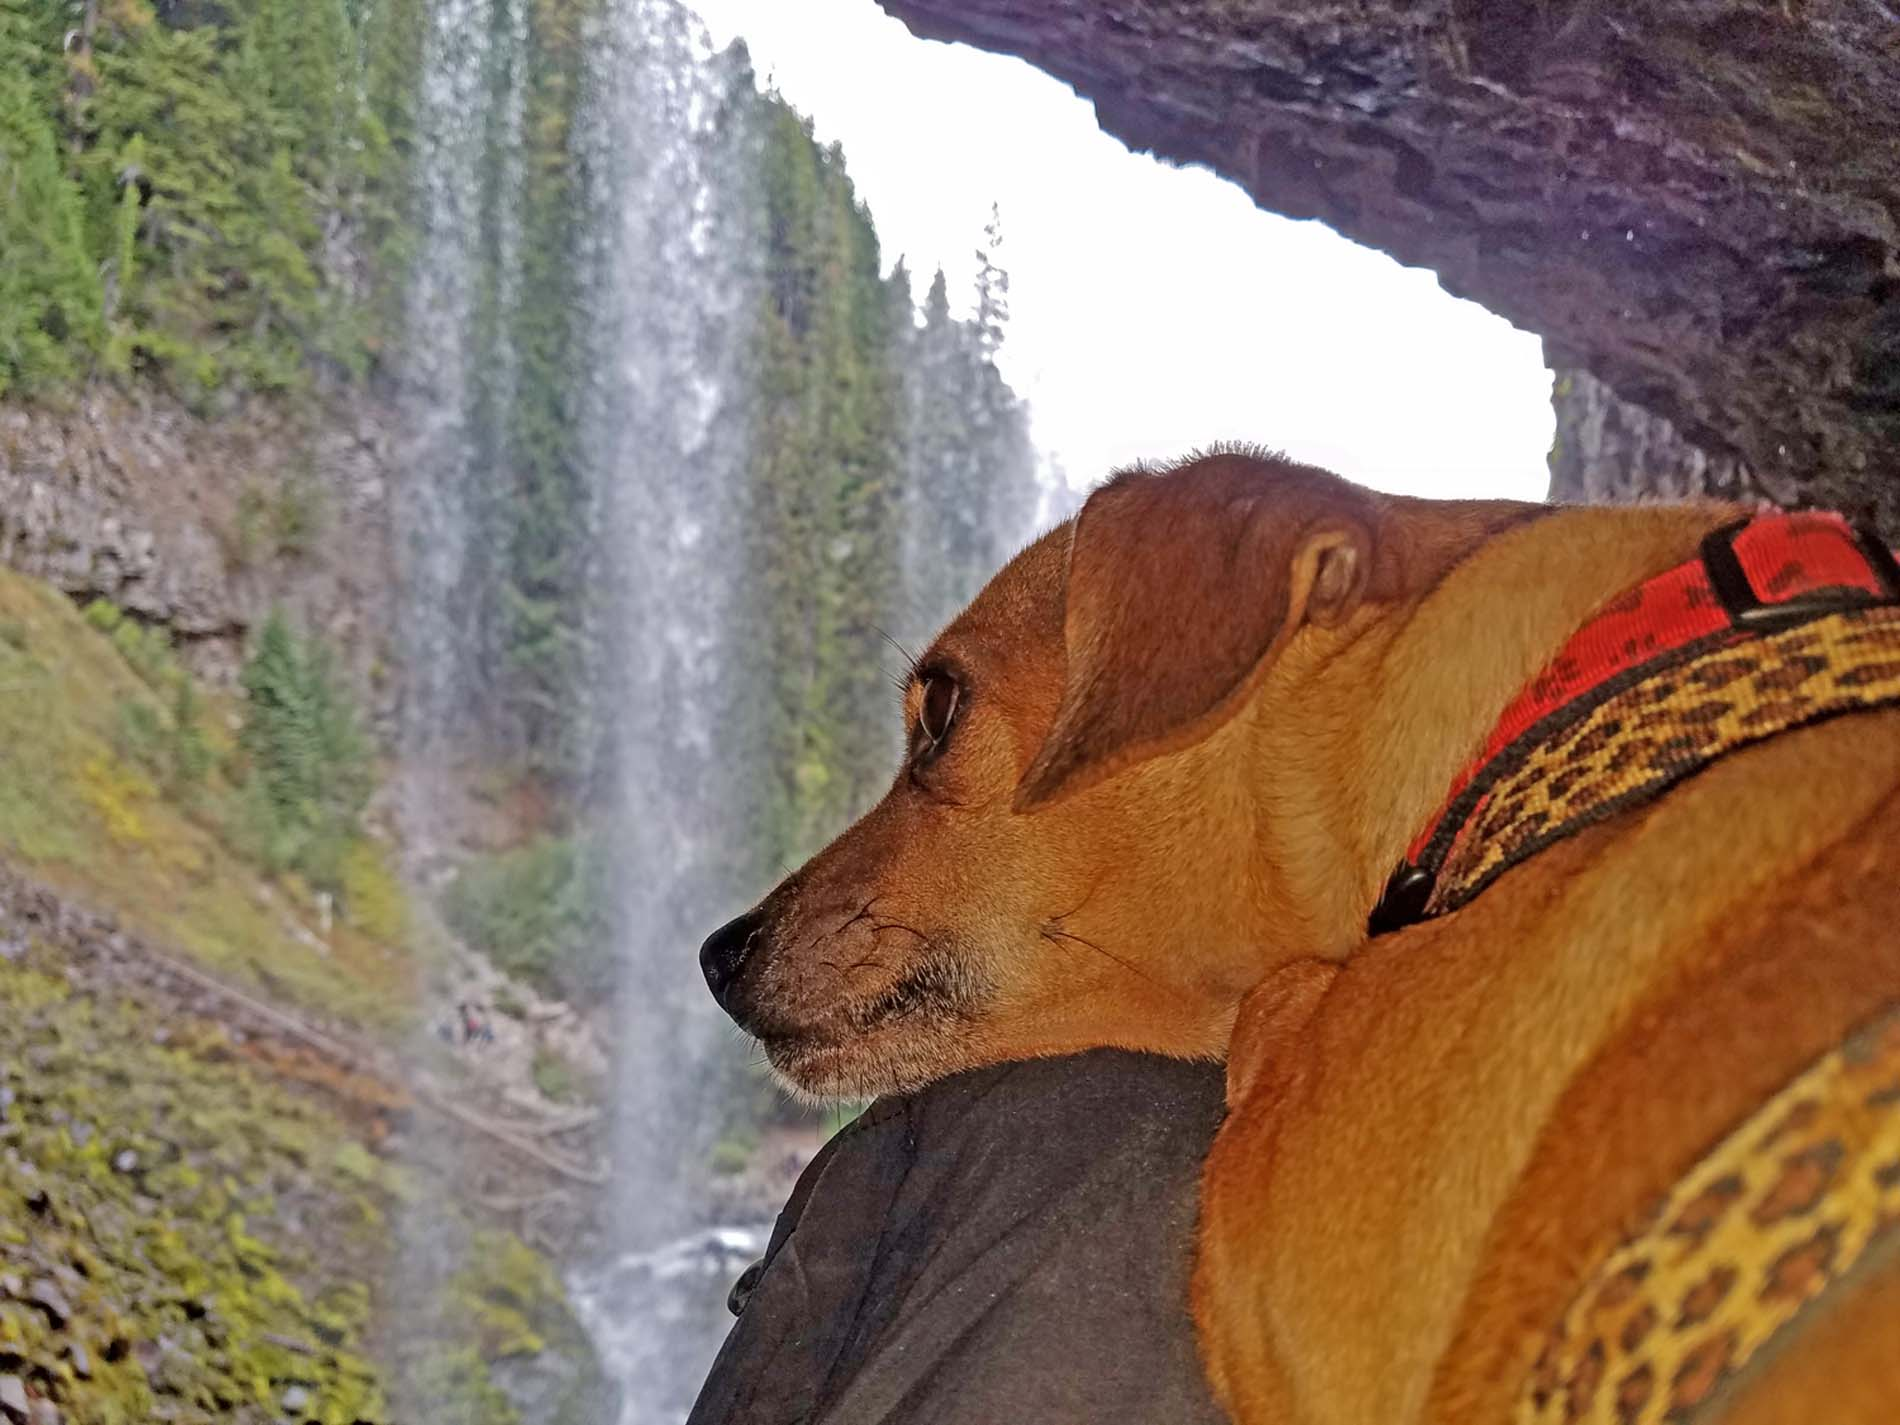 Doodle's deep thoughts on waterfalls . Photo: (c) Barb Ayers, DogDiary.org